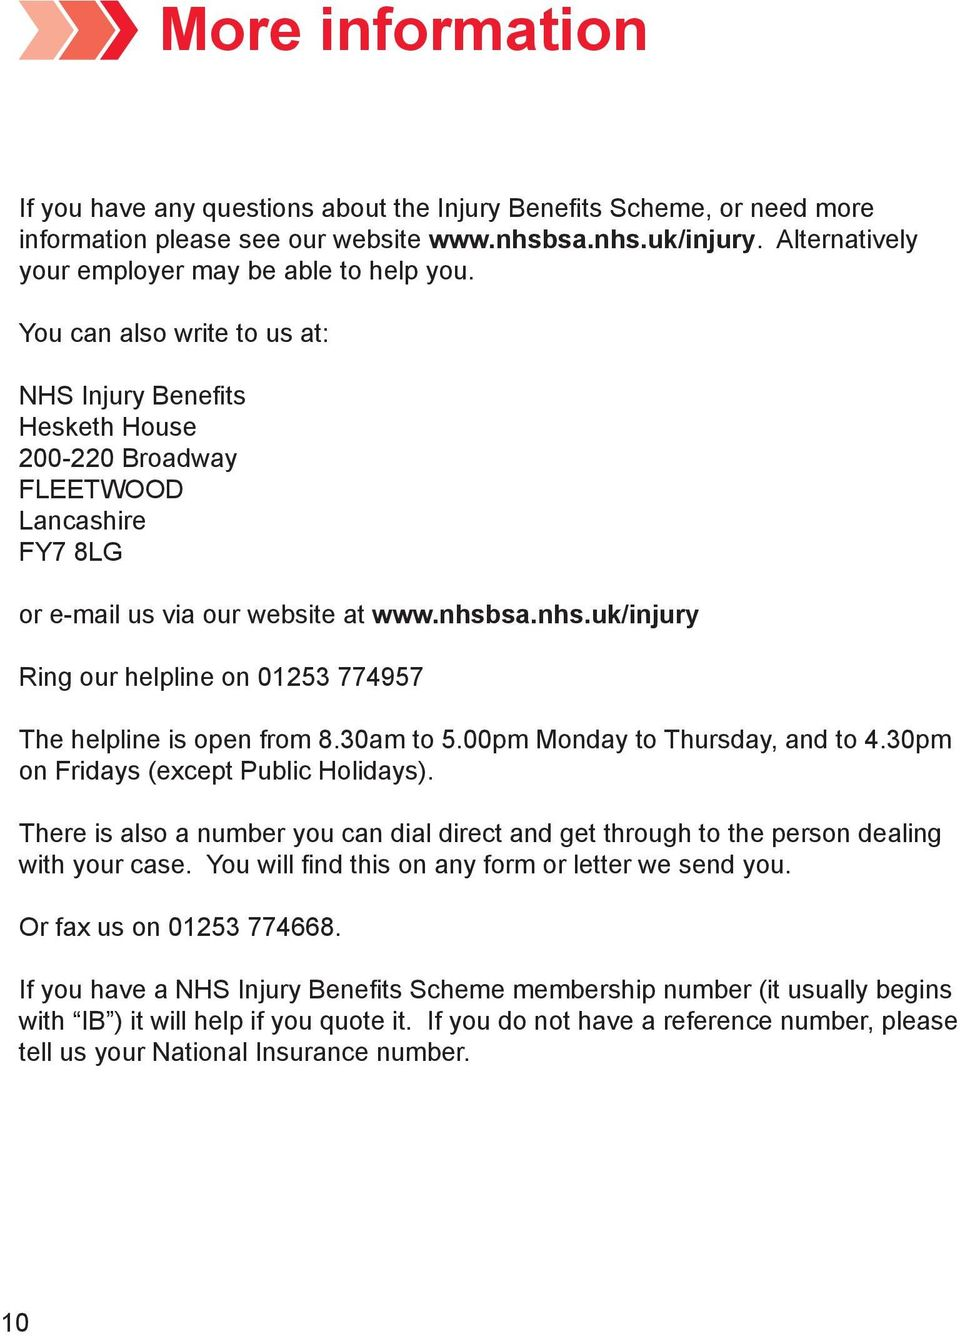 nhsbsa.nhs.uk/injury Ring our helpline on 01253 774957 The helpline is open from 8.30am to 5.00pm Monday to Thursday, and to 4.30pm on Fridays (except Public Holidays).